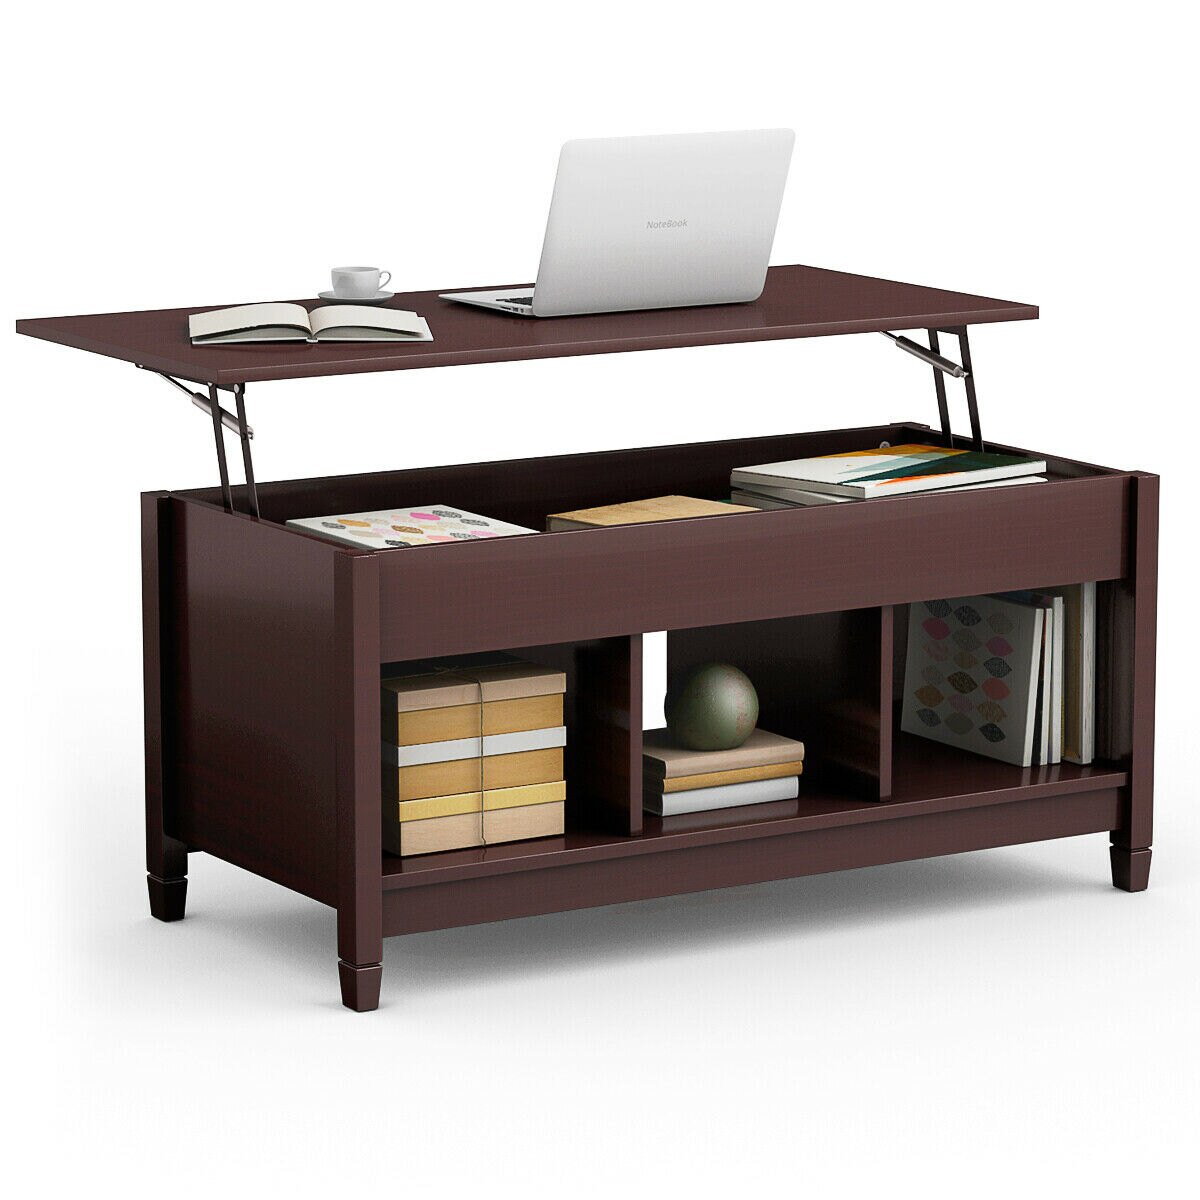 Costway Costway Lift Top Coffee Table W Hidden Compartment And for size 1200 X 1200